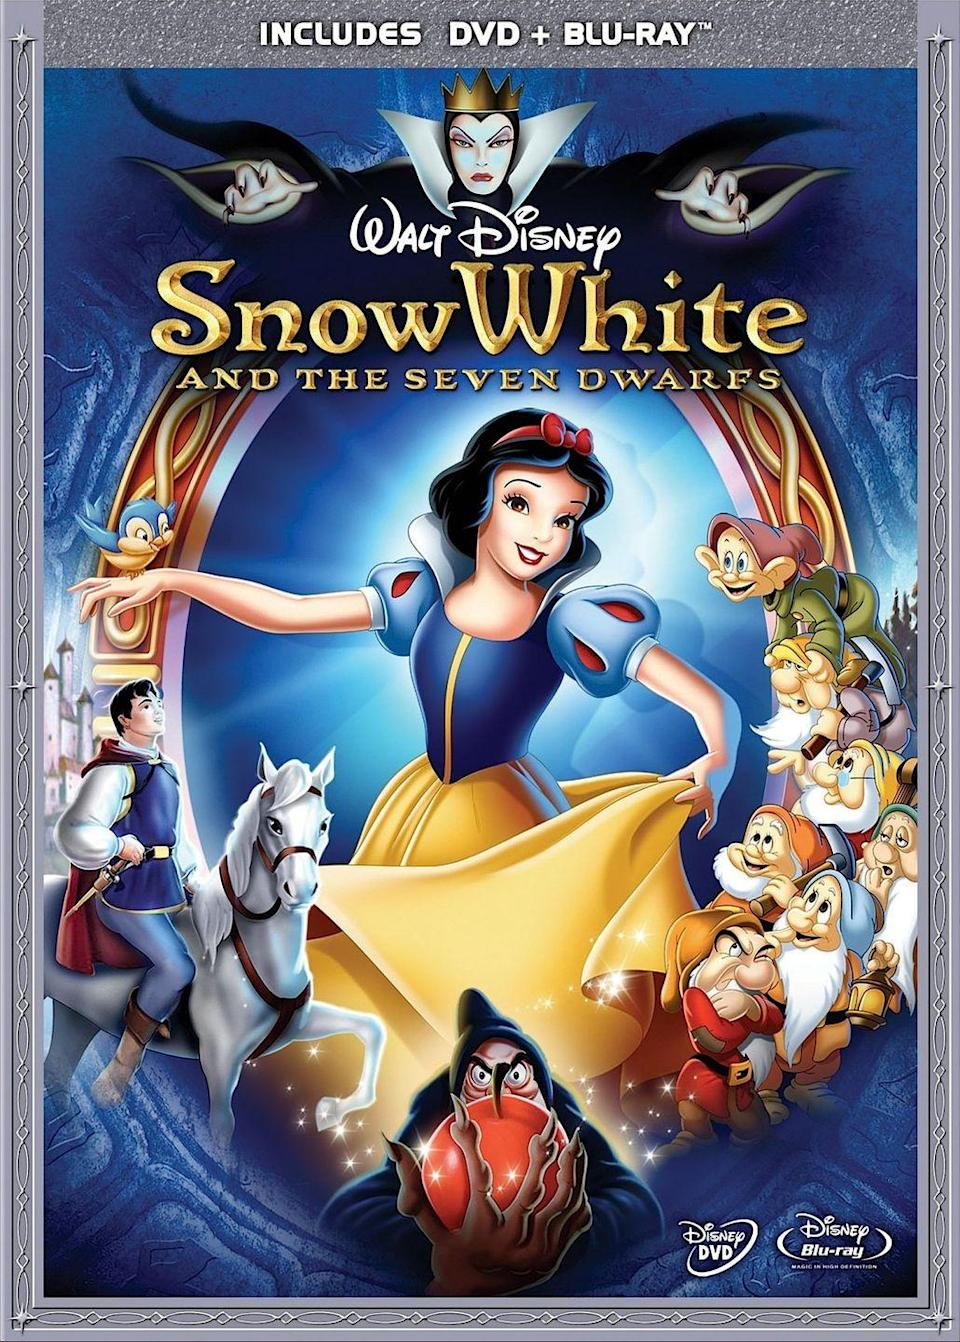 """<p><em>Snow White</em> was Disney's first animated feature film. It kicked off their insanely successful princess franchise, which is why it's surprising it took Disney so long to <a href=""""https://www.seventeen.com/celebrity/movies-tv/news/a43530/snow-white-disneys-very-first-disney-princess-movie-is-finally-getting-a-live-action-remake/"""" rel=""""nofollow noopener"""" target=""""_blank"""" data-ylk=""""slk:green-light a live-action version"""" class=""""link rapid-noclick-resp"""">green-light a live-action version</a>! The movie doesn't yet have a release date.</p><p><a class=""""link rapid-noclick-resp"""" href=""""https://www.amazon.com/dp/B01434DFYG?tag=syn-yahoo-20&ascsubtag=%5Bartid%7C10065.g.2936%5Bsrc%7Cyahoo-us"""" rel=""""nofollow noopener"""" target=""""_blank"""" data-ylk=""""slk:Watch the Original"""">Watch the Original</a></p>"""